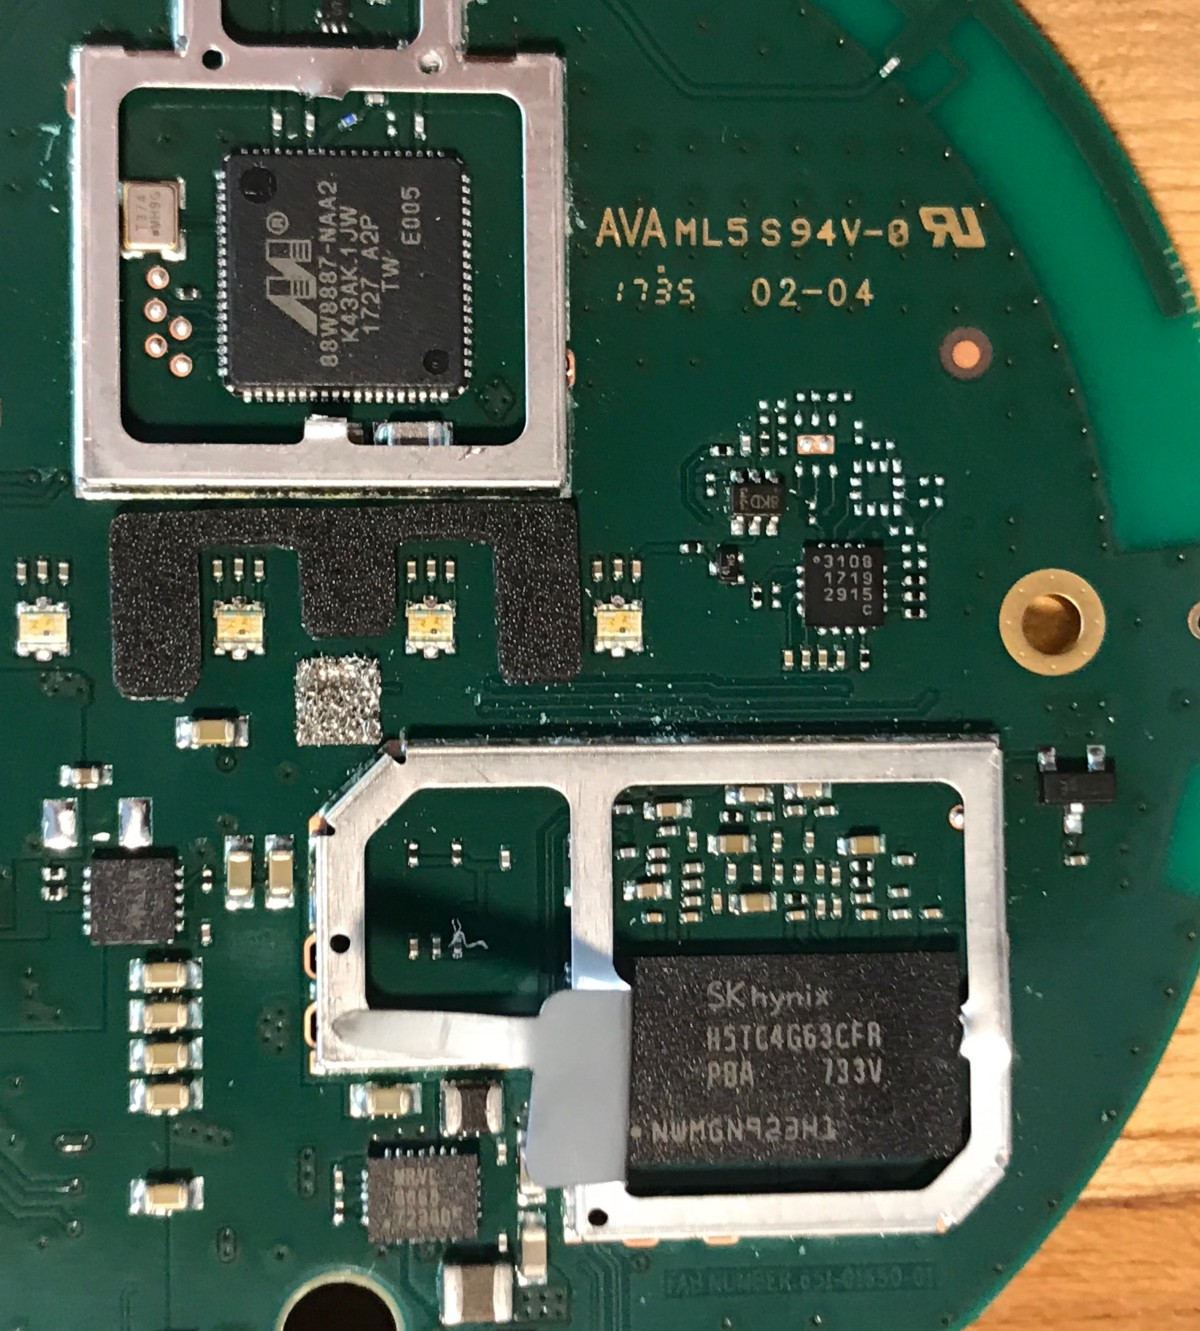 Google Home Mini Teardown Comparison To Echo Dot And Giving Circuit Can Be Used As A Standalone Voice Recorder View No Long Term Harm Here The Shield Covers Will Still Protect From Any Noise Once Replaced